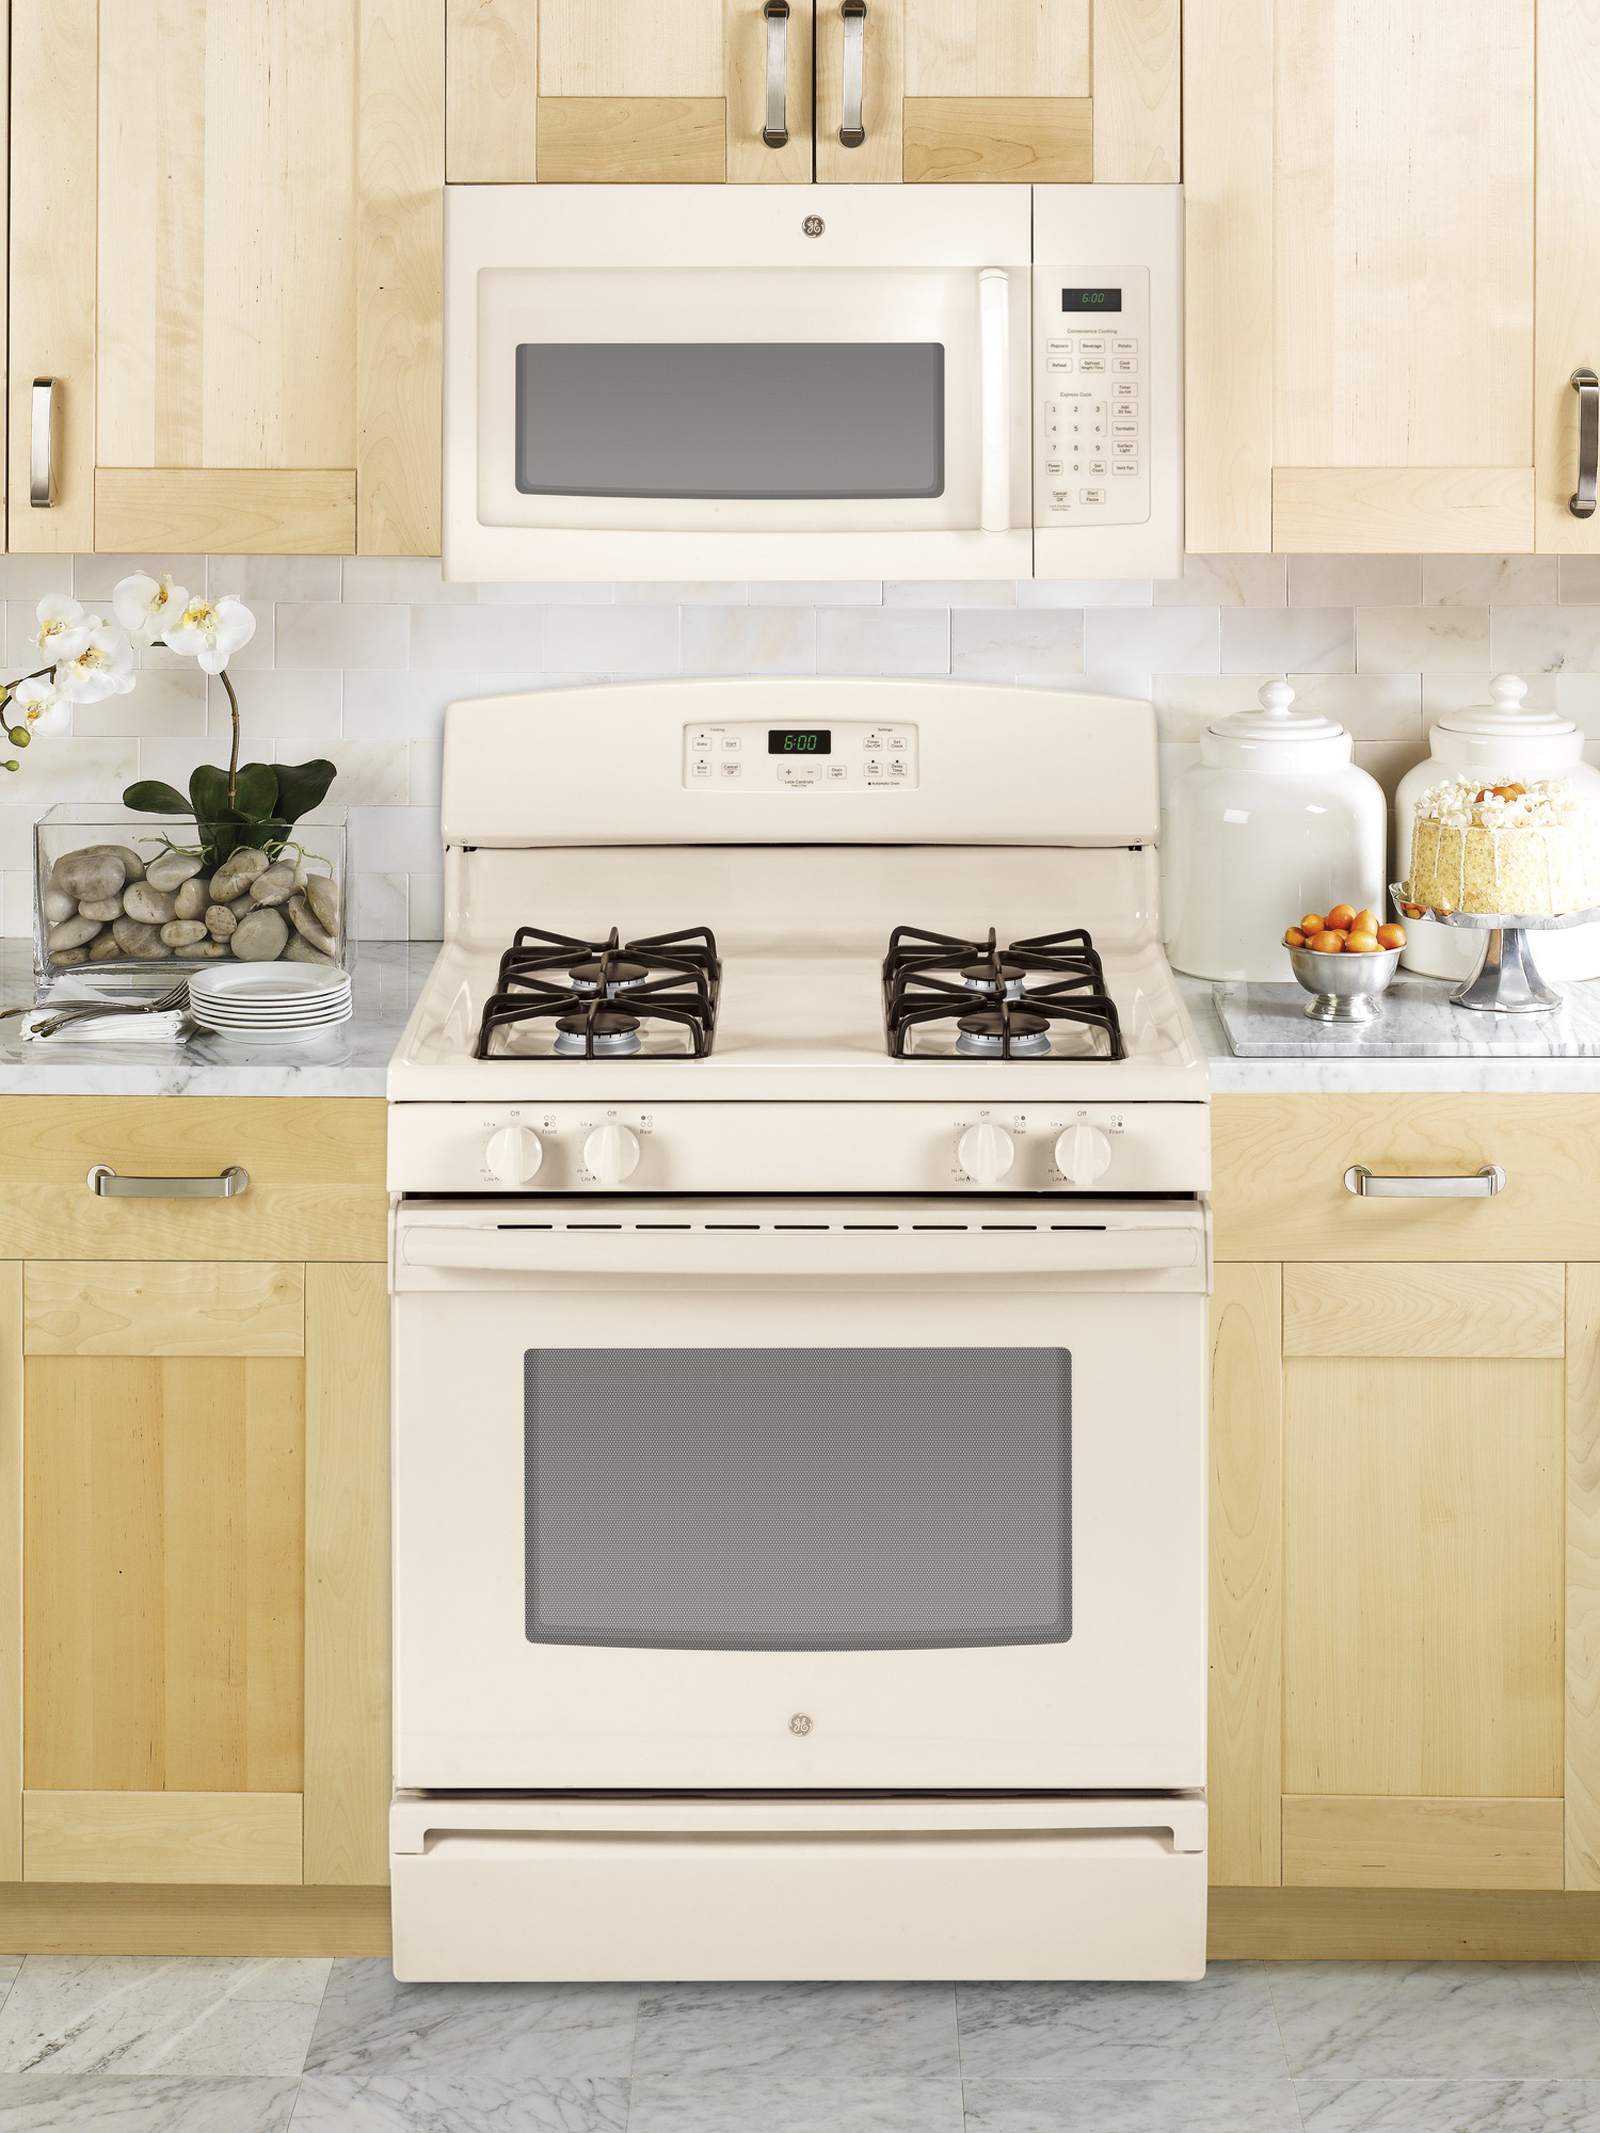 GE Appliances JGBS60DEFCC 4.8 cu. ft. Gas Range - Bisque